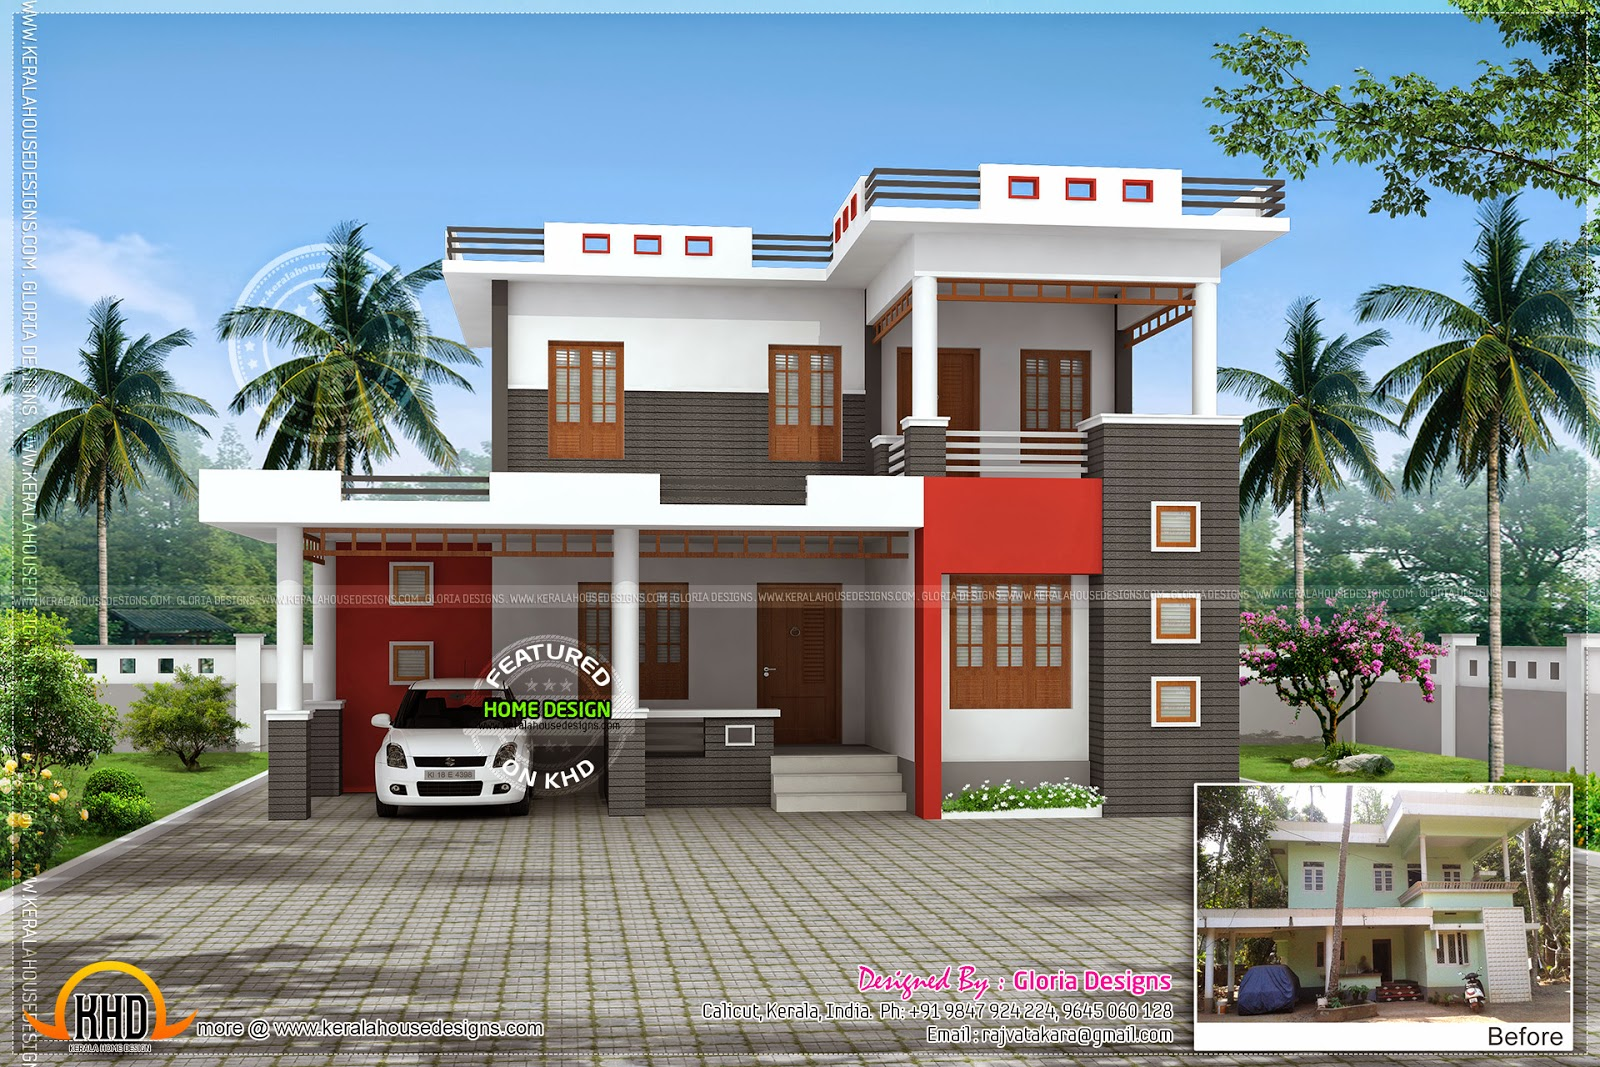 Renovation 3d model for an old house kerala home design for New home models and plans